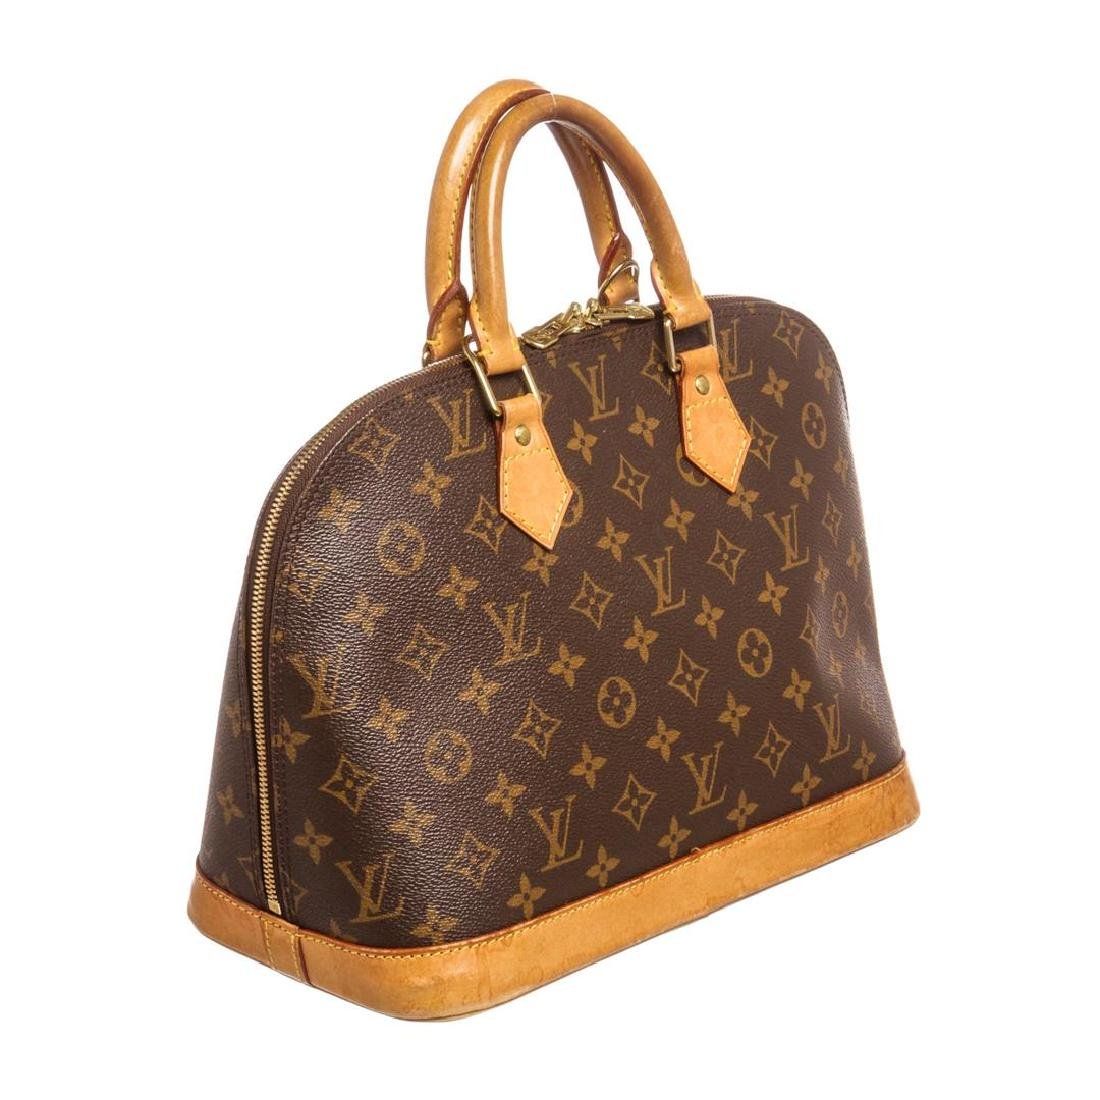 Louis Vuitton Monogram Canvas Leather Alma PM Handbag - 2